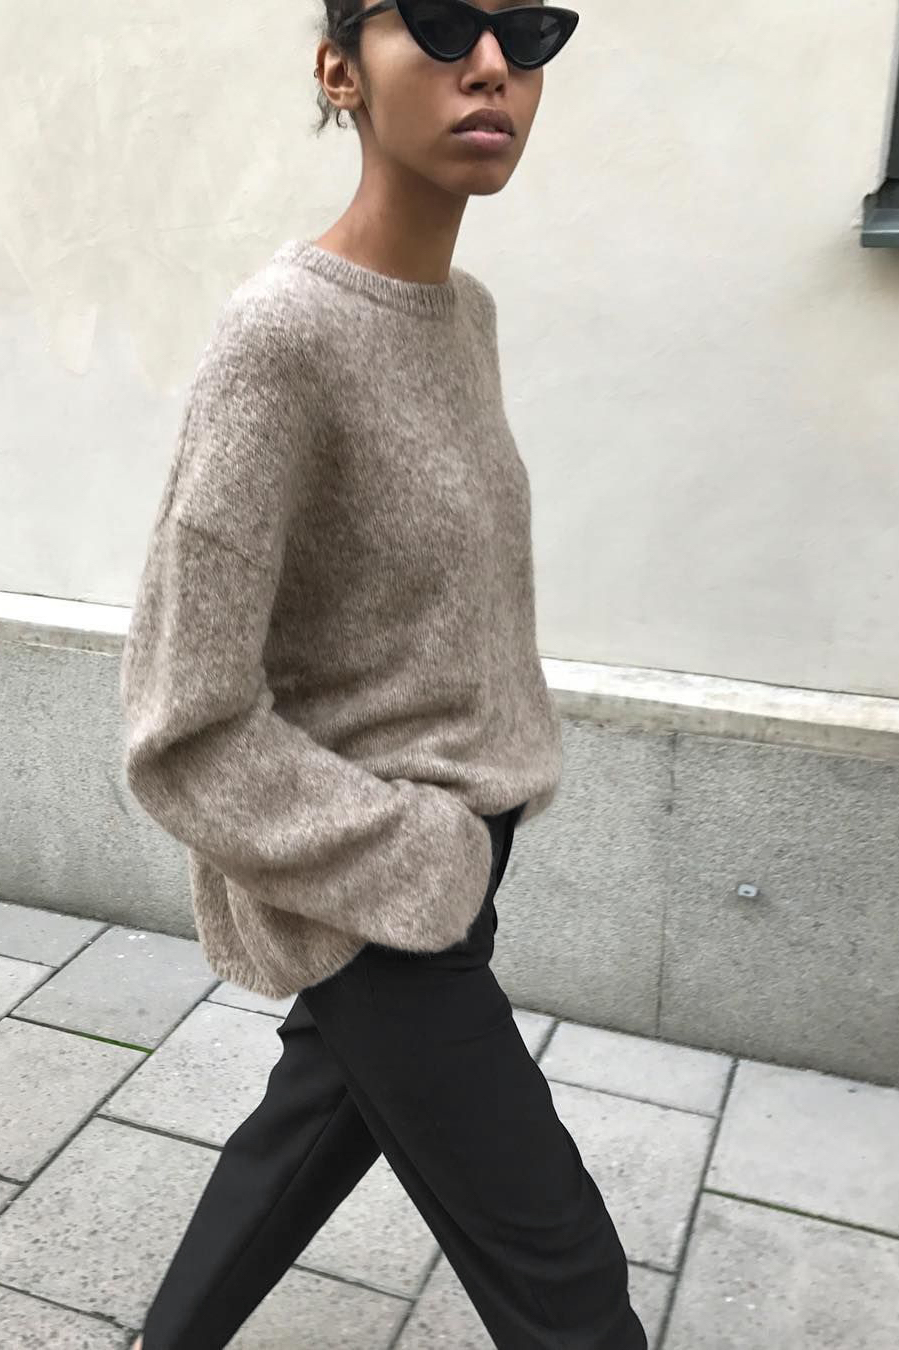 Black Trousers with beige sweater minimalist outfit